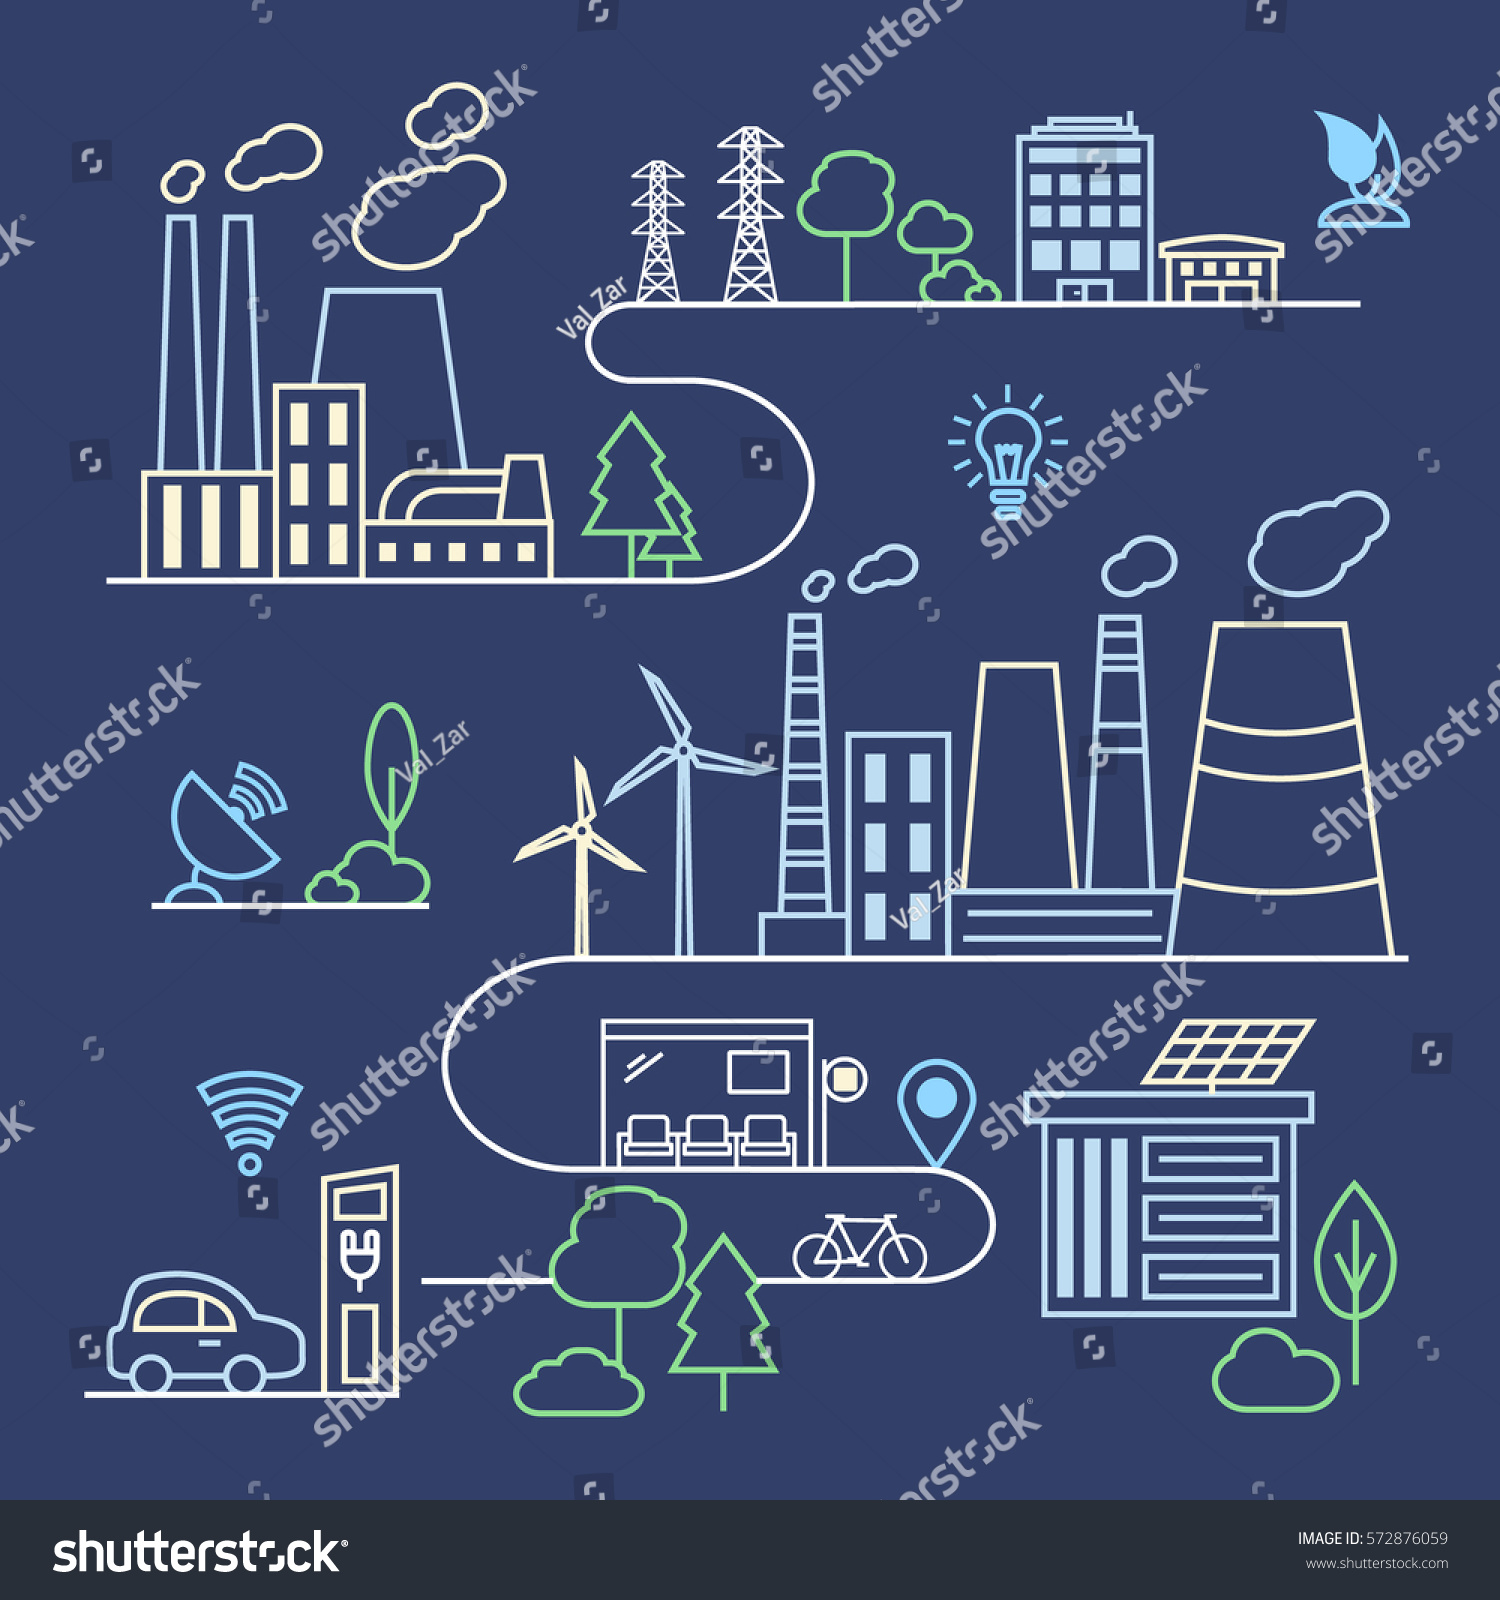 Line Art Generator From Image : Smart city illustration linear style factory stock vector